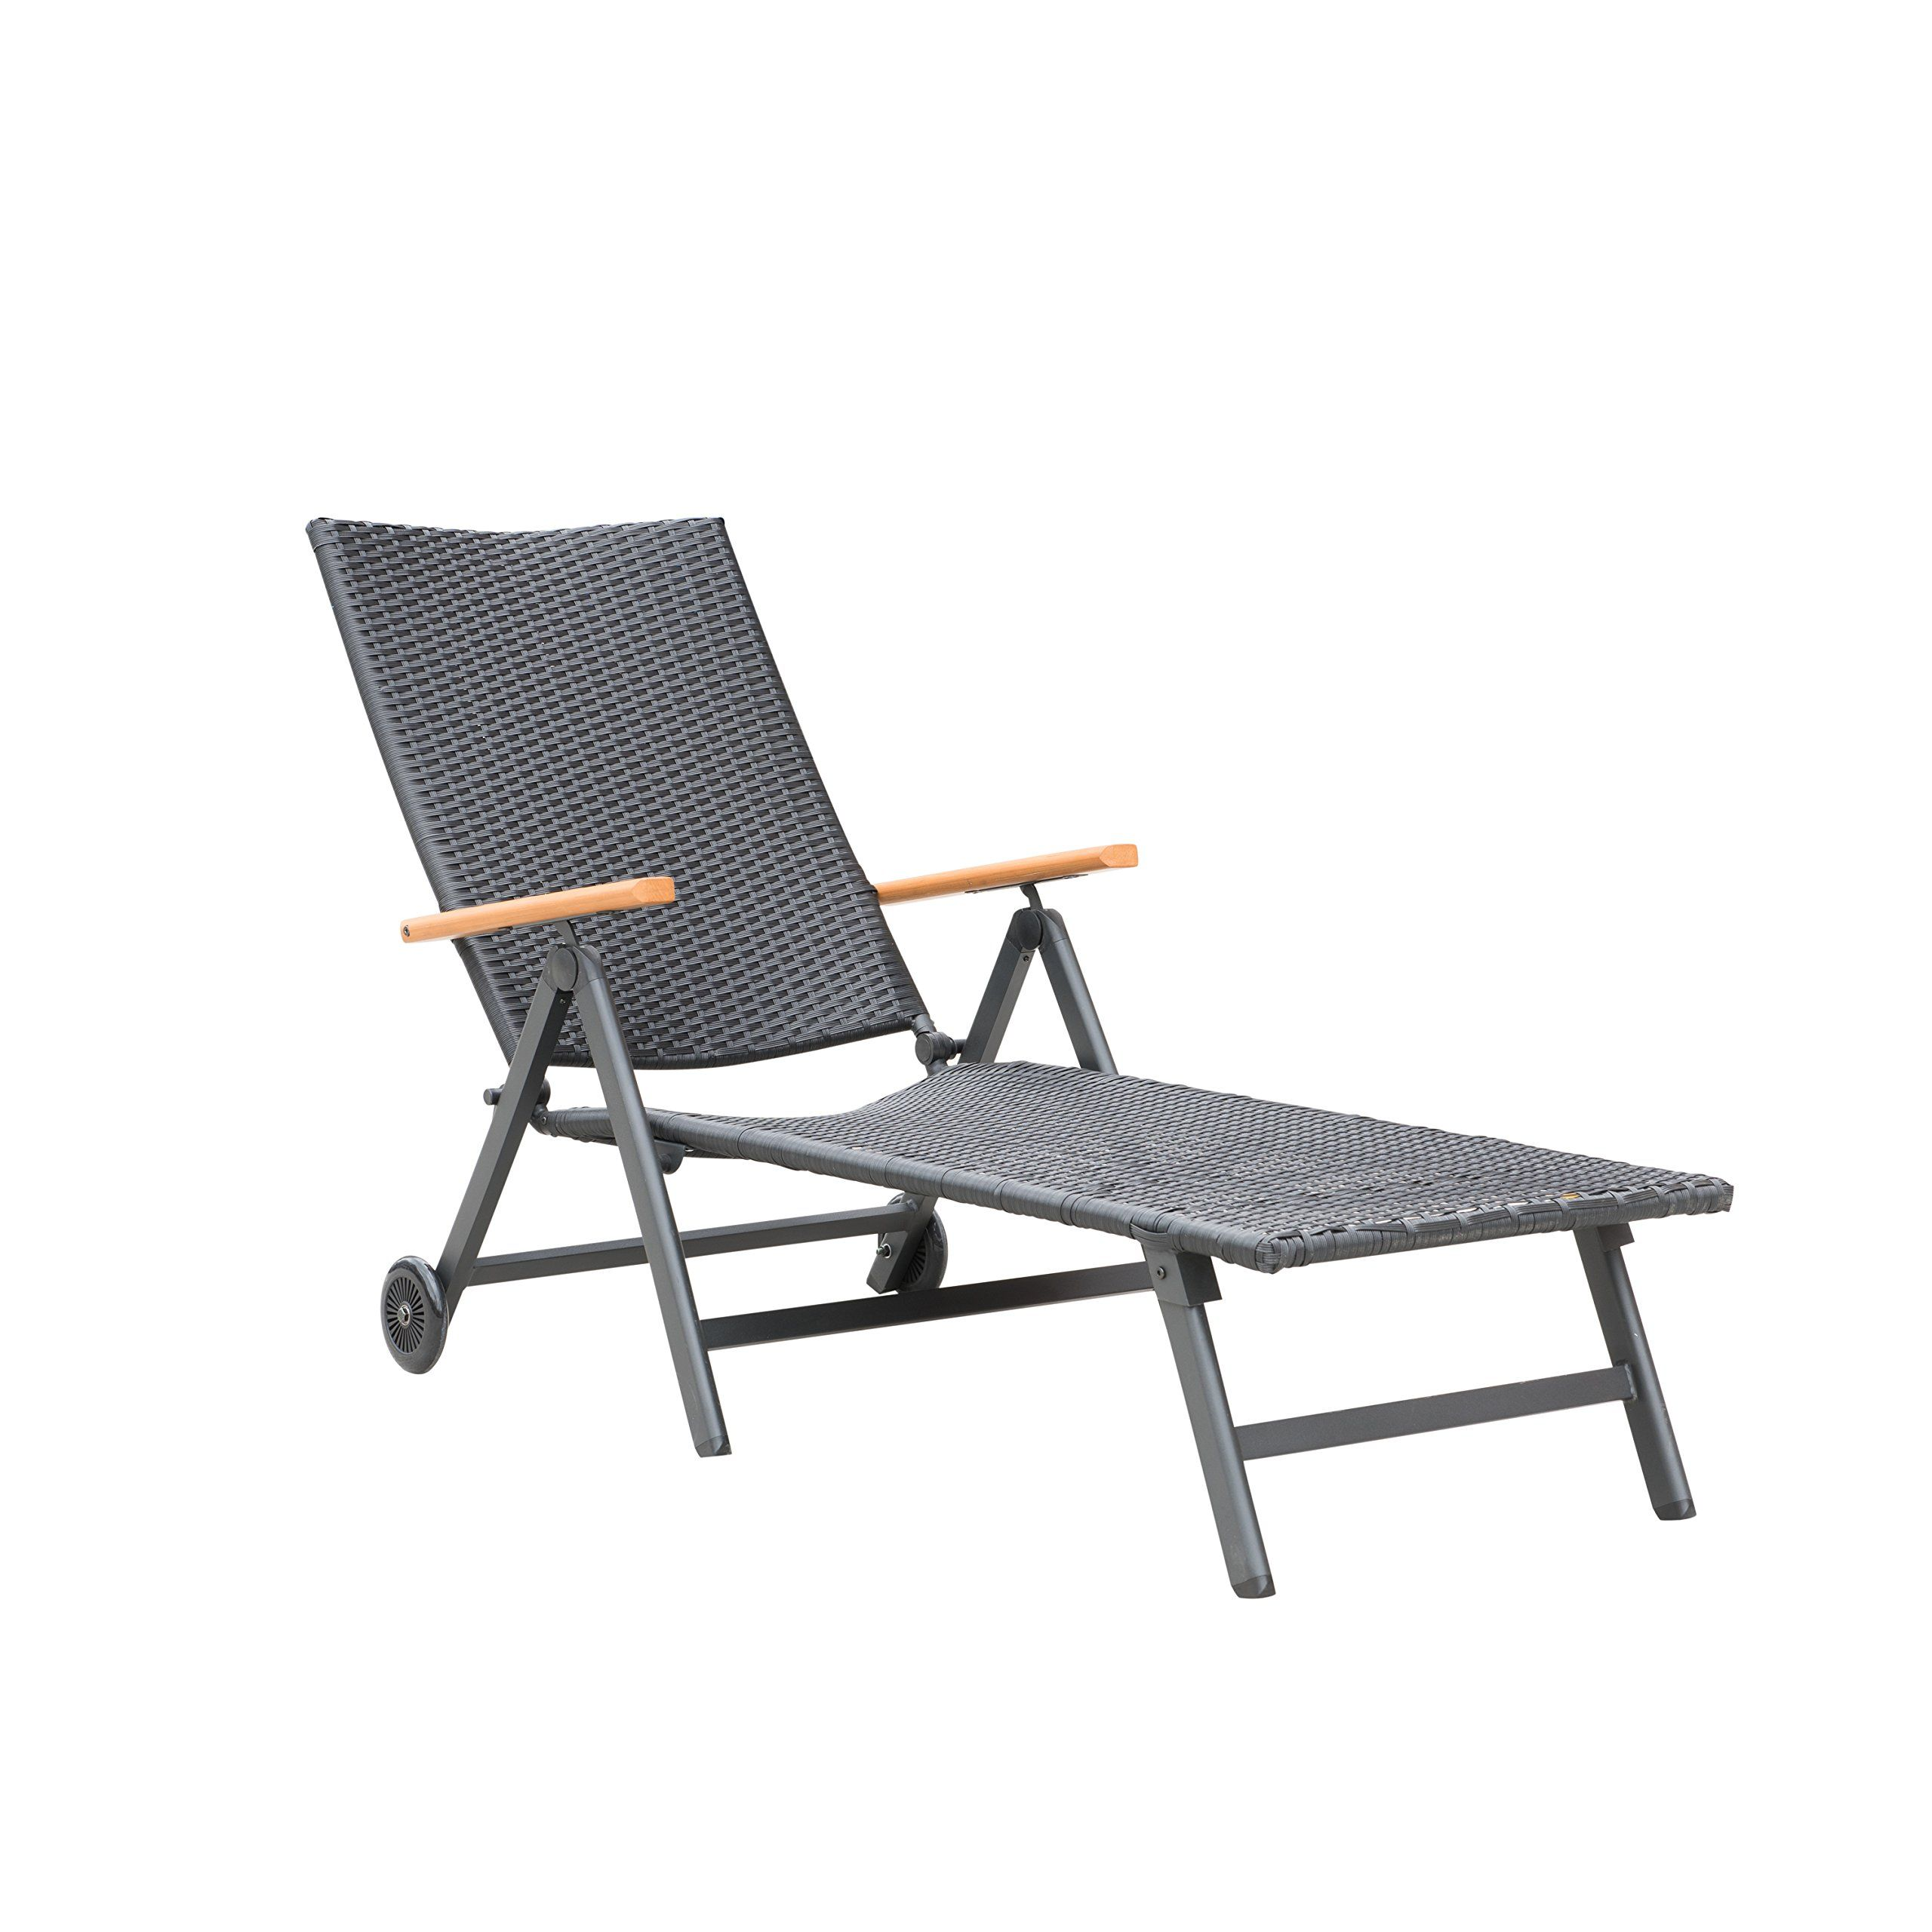 Metal And Wood Outdoor Furniture supernova wicker chaise lounge patio chair outdoor yard beach